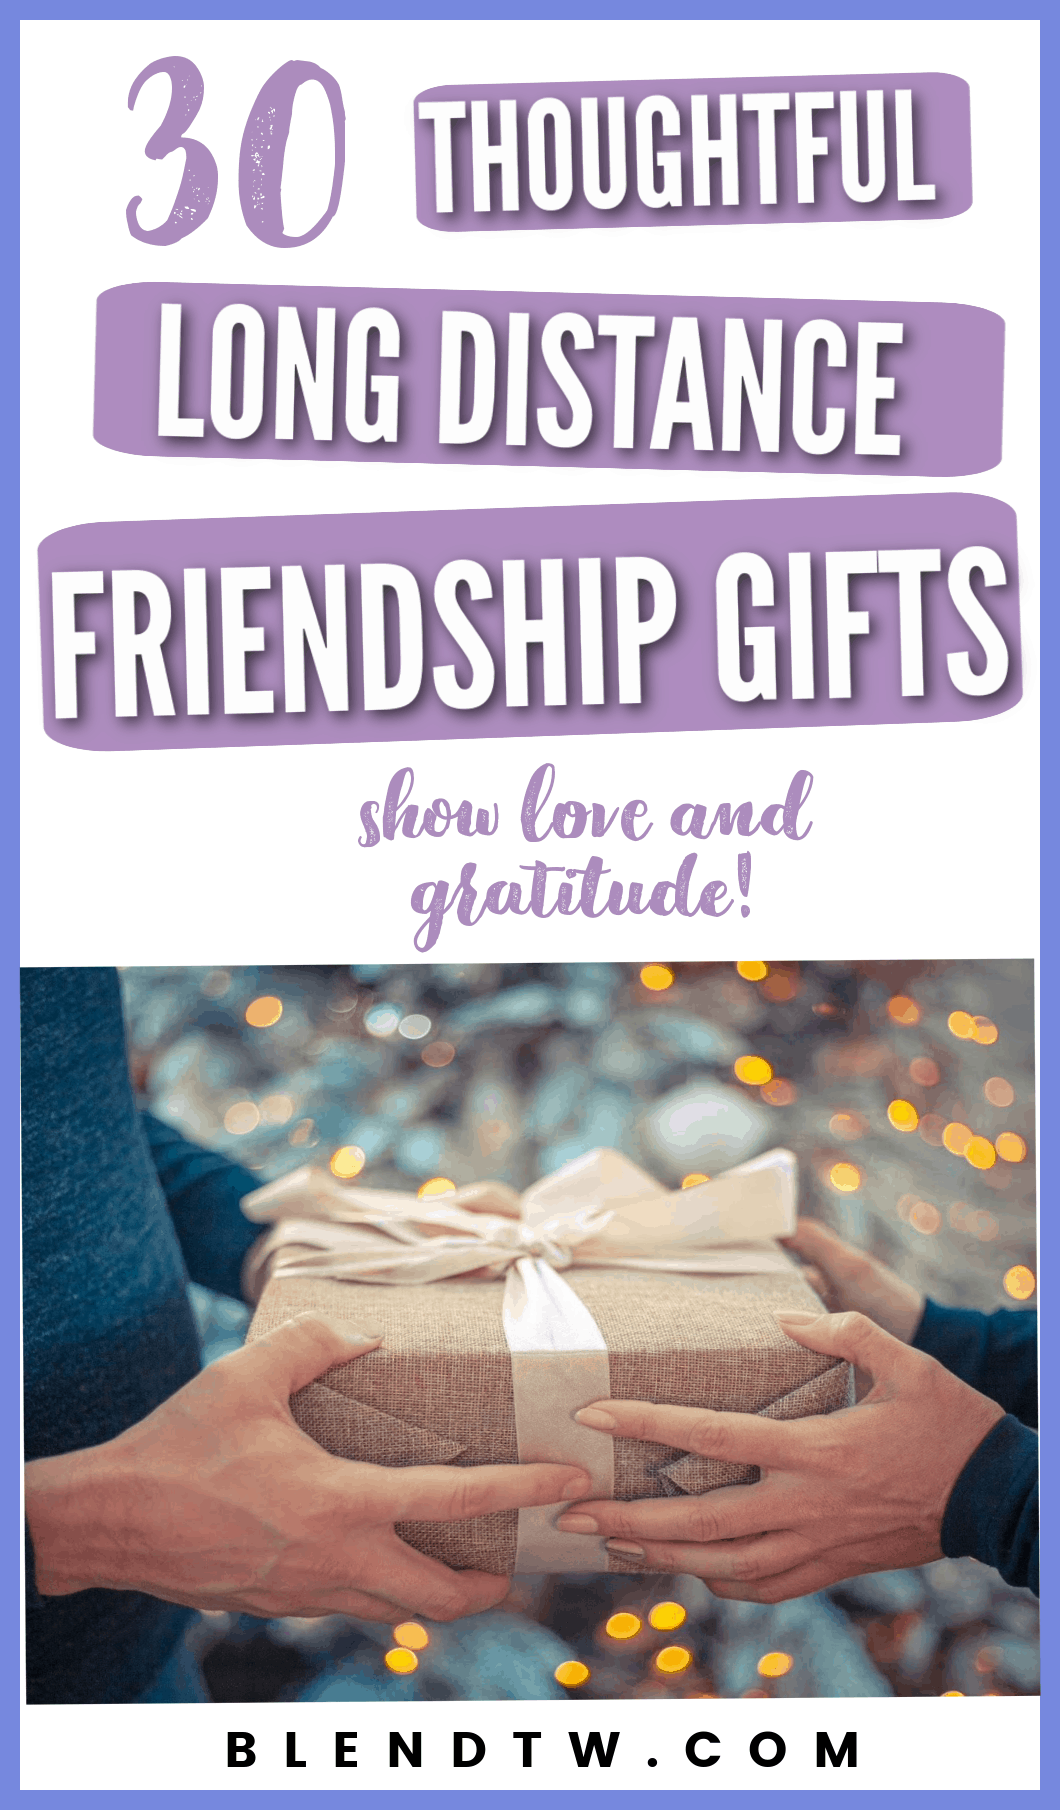 Pin for 30 thoughtful long distance friendship gifts.